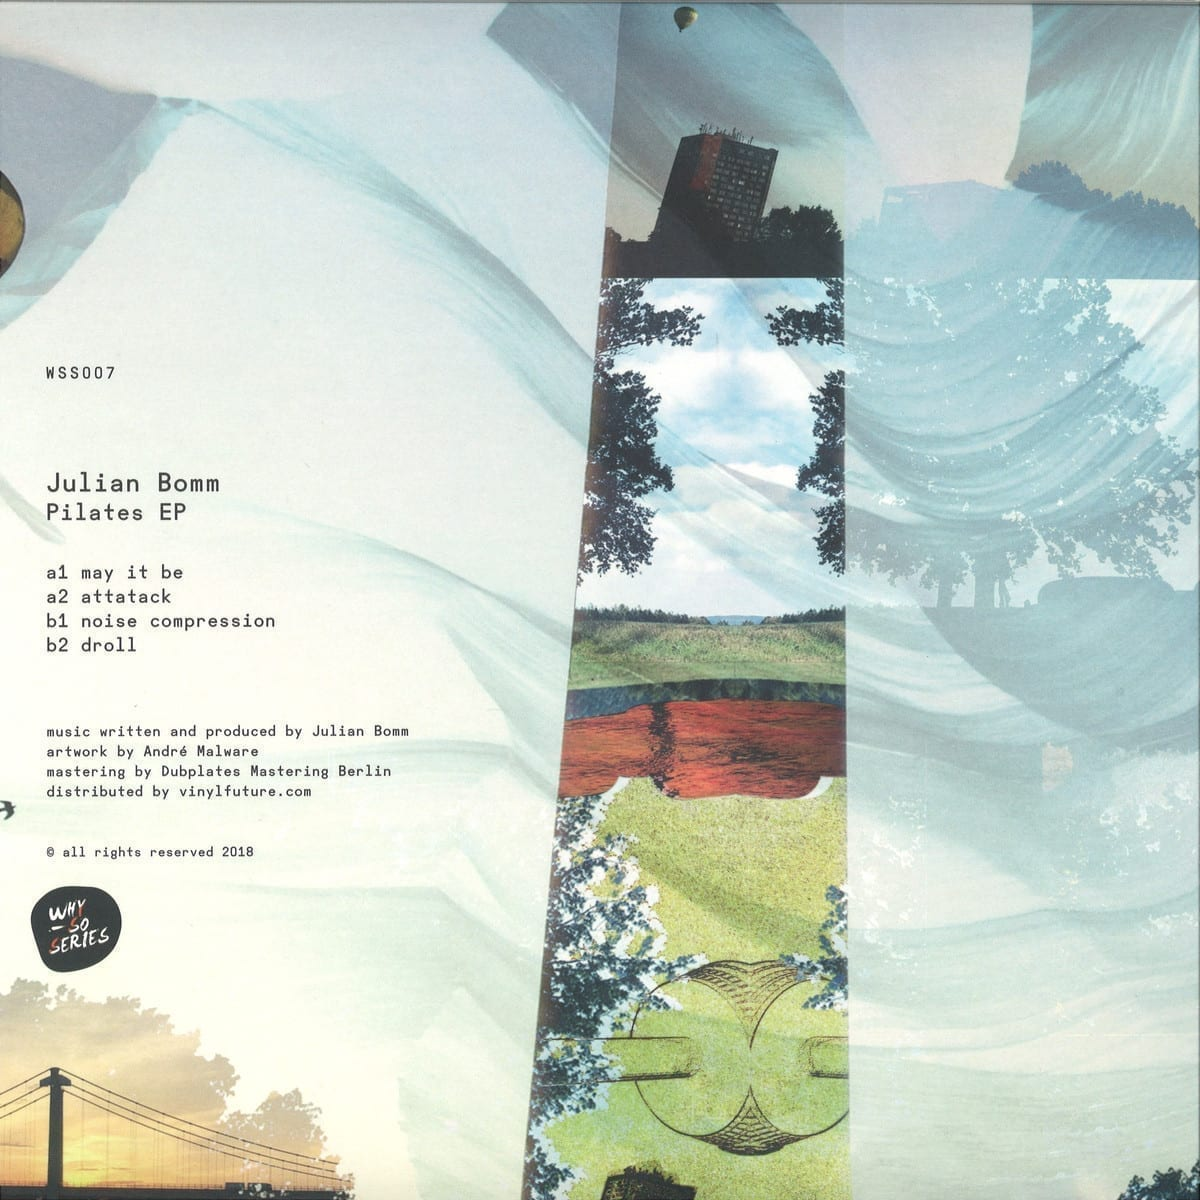 julian bomm - pilates ep [why so series] back